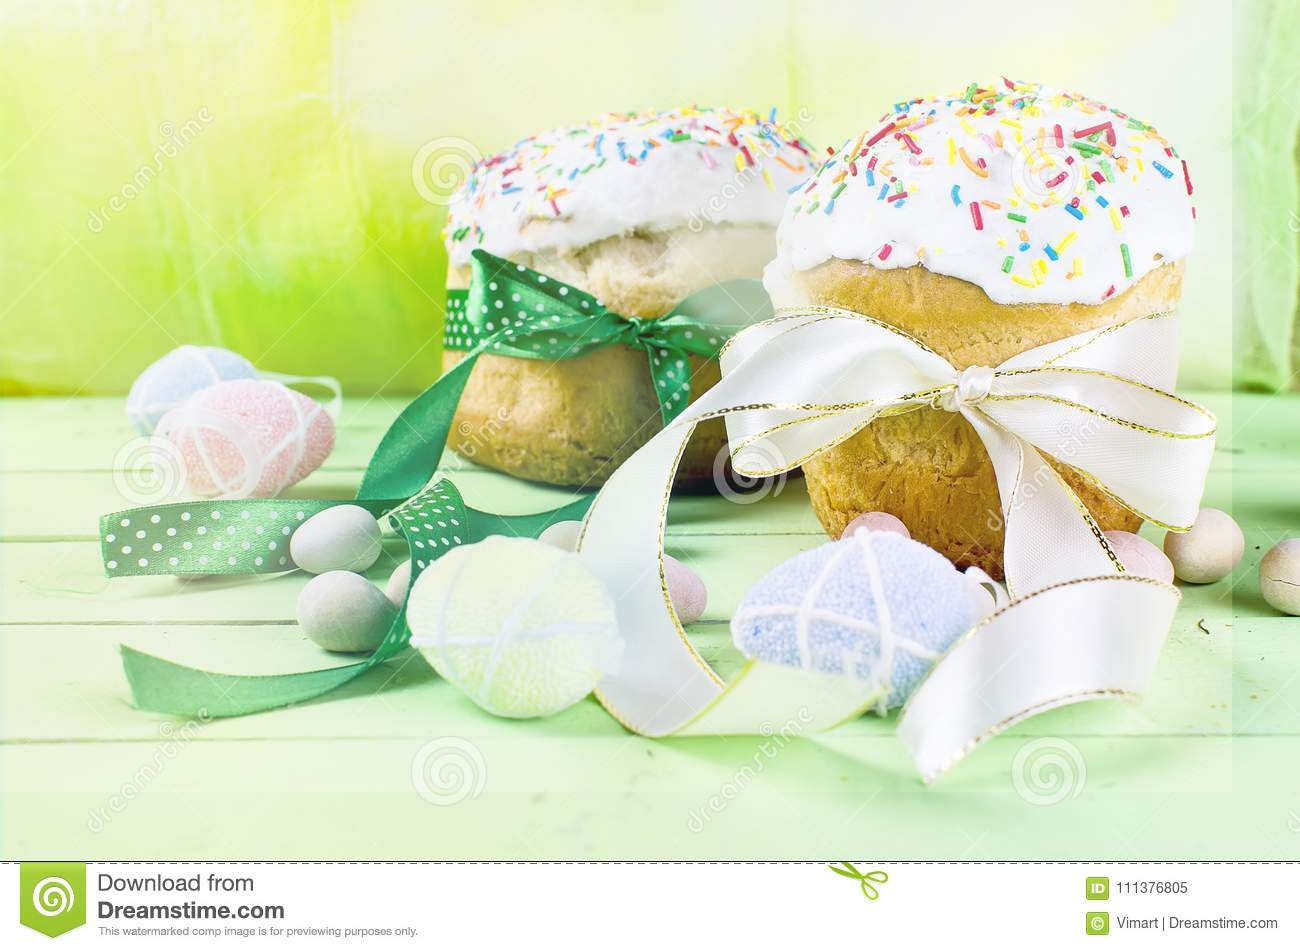 A Spring/Easter Collection: Sweet